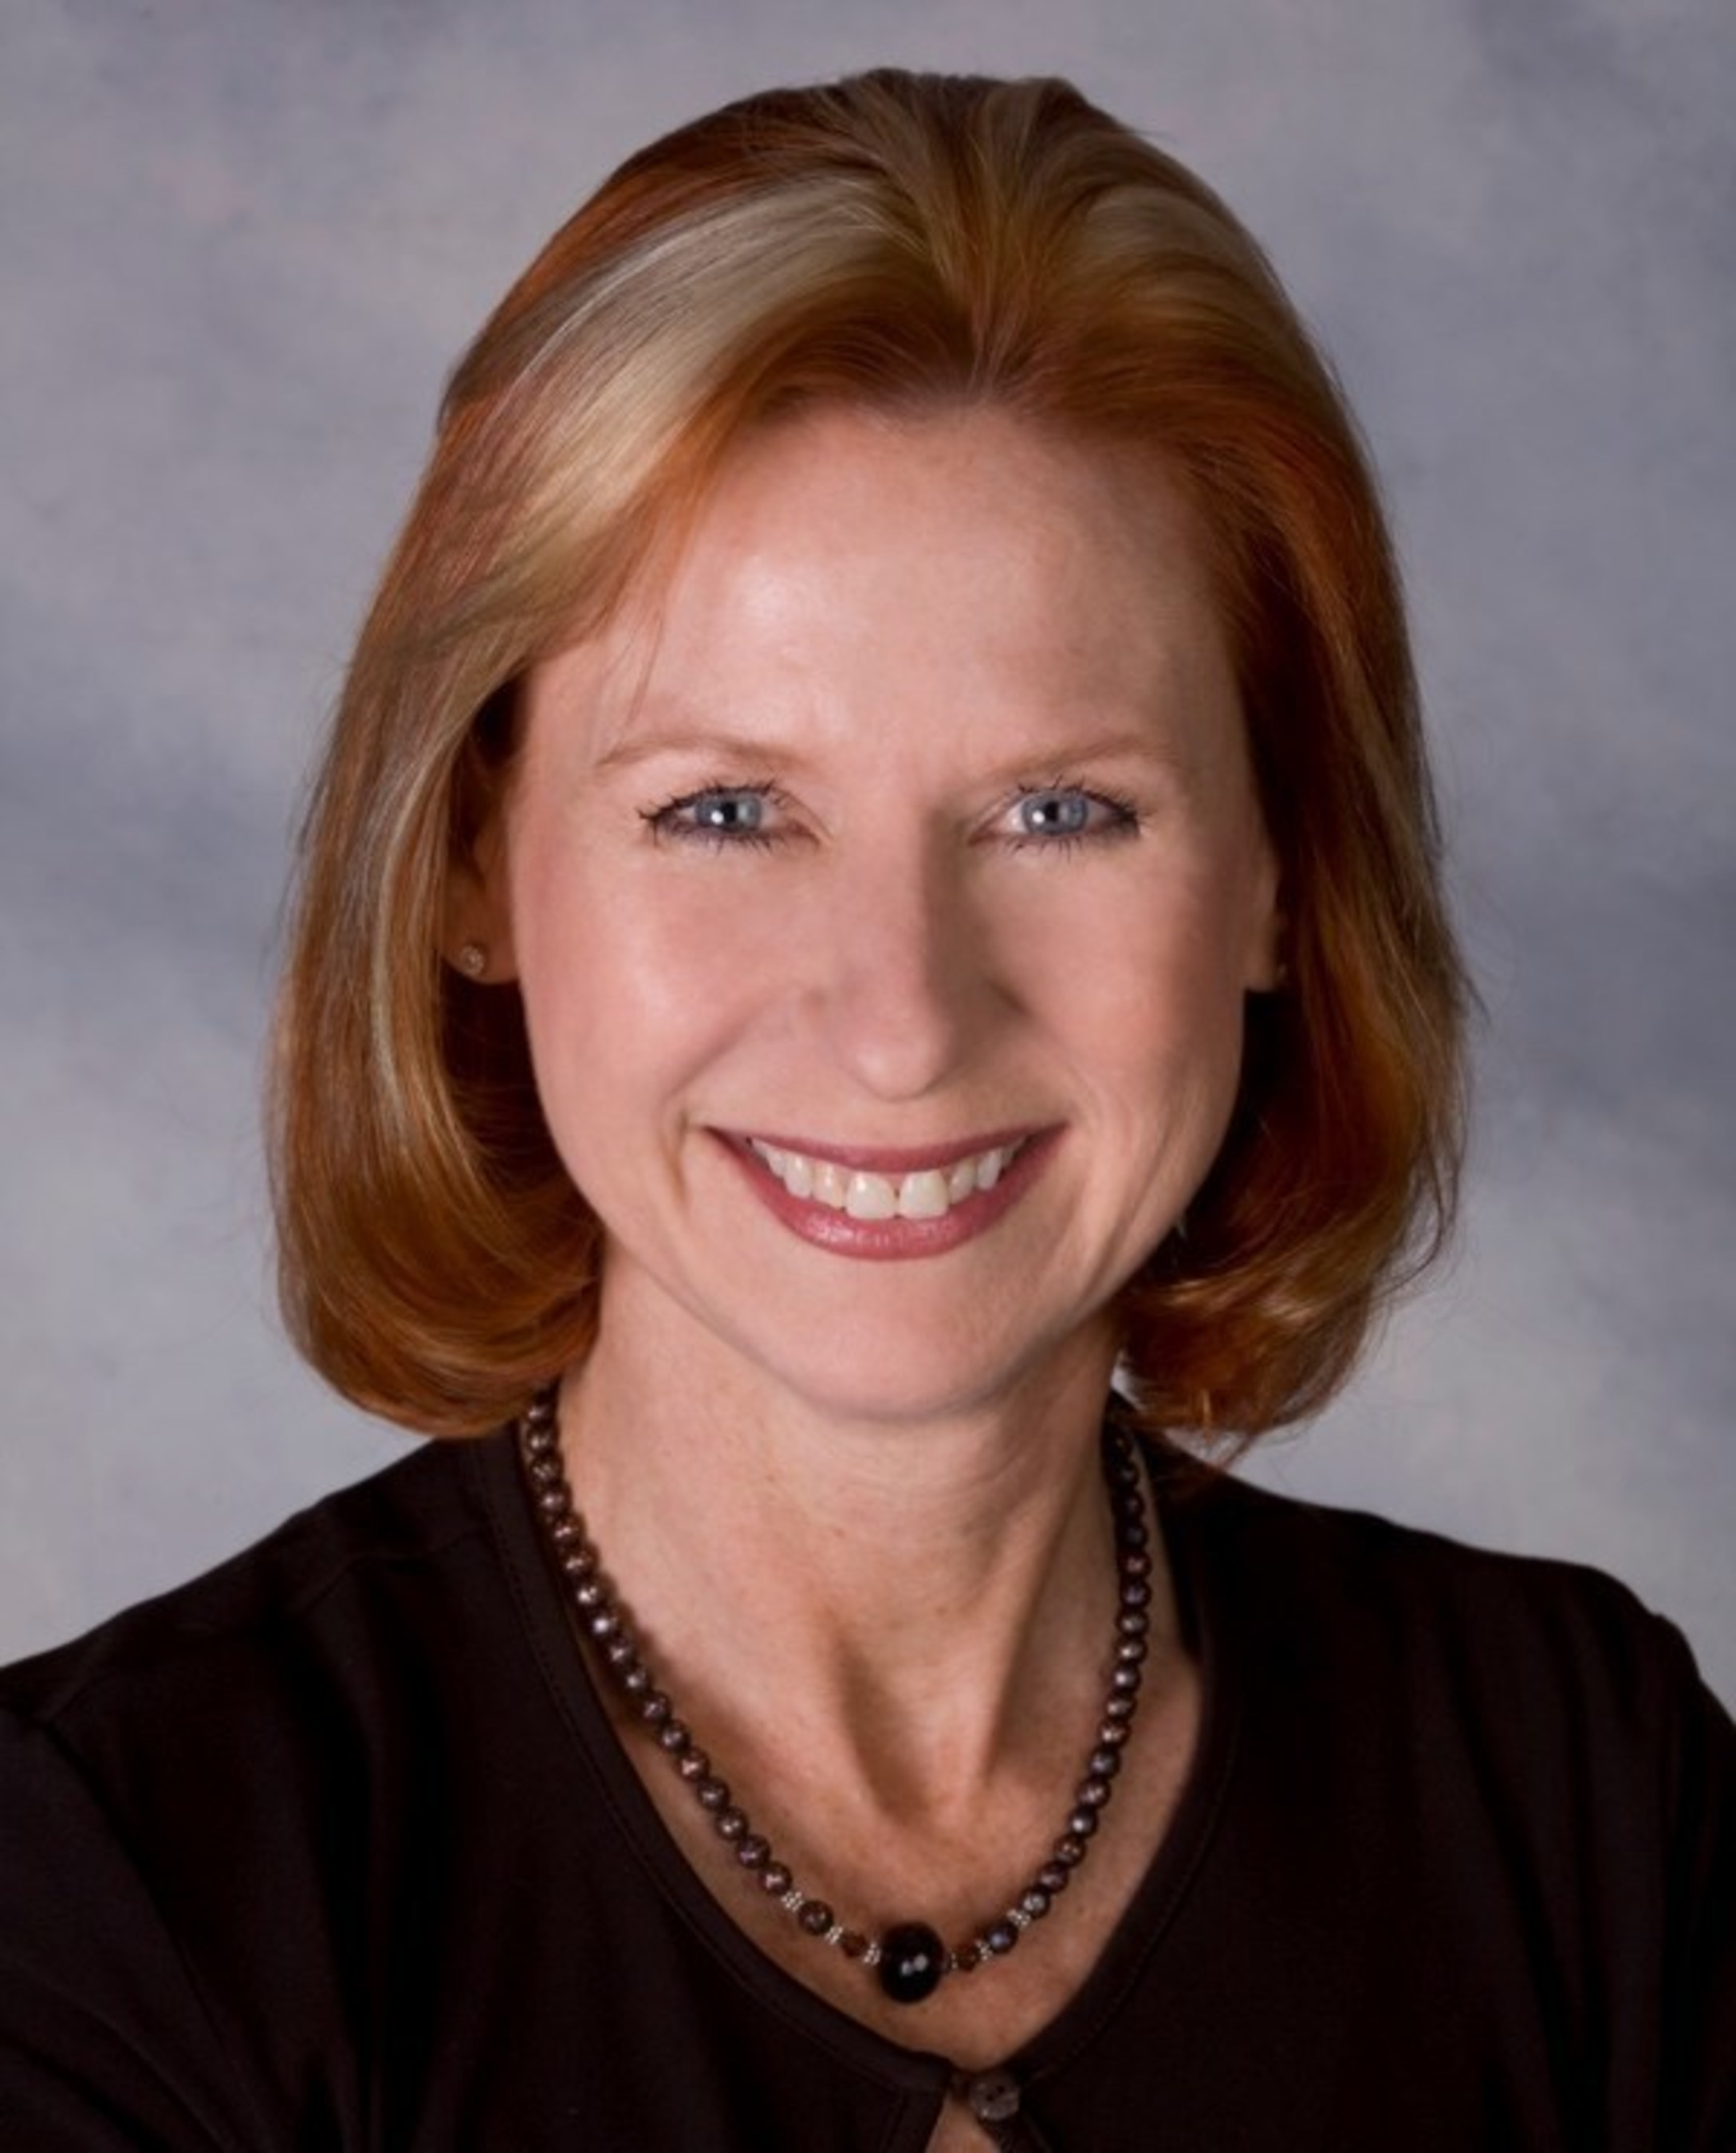 Cindy Sauvignon, General Manager Service Providers - Cindy is leading APTARE's Global Service Provider business unit.